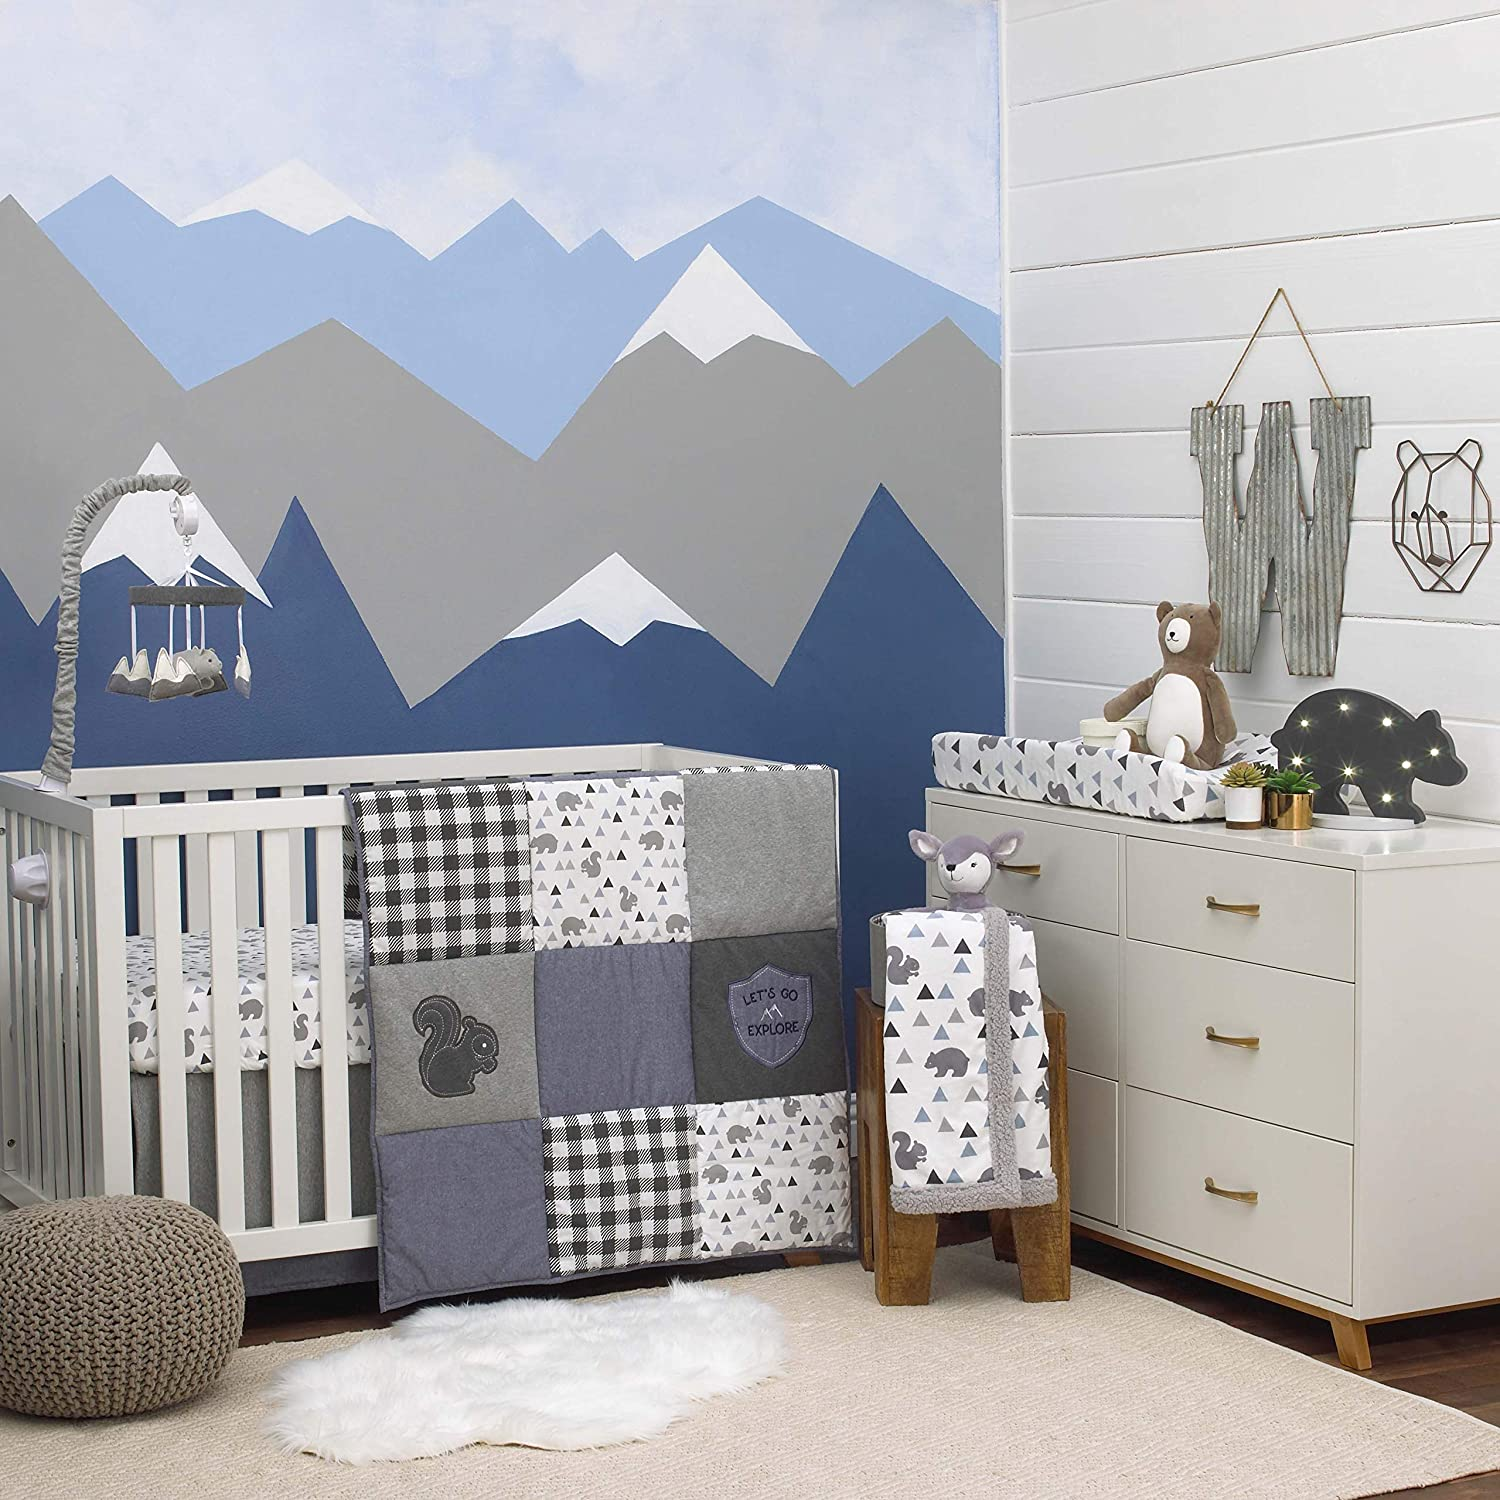 NoJo Mountain Patchwork 4Piece Nursery Crib Bedding Set, Grey/Denim/Slate Blue/White